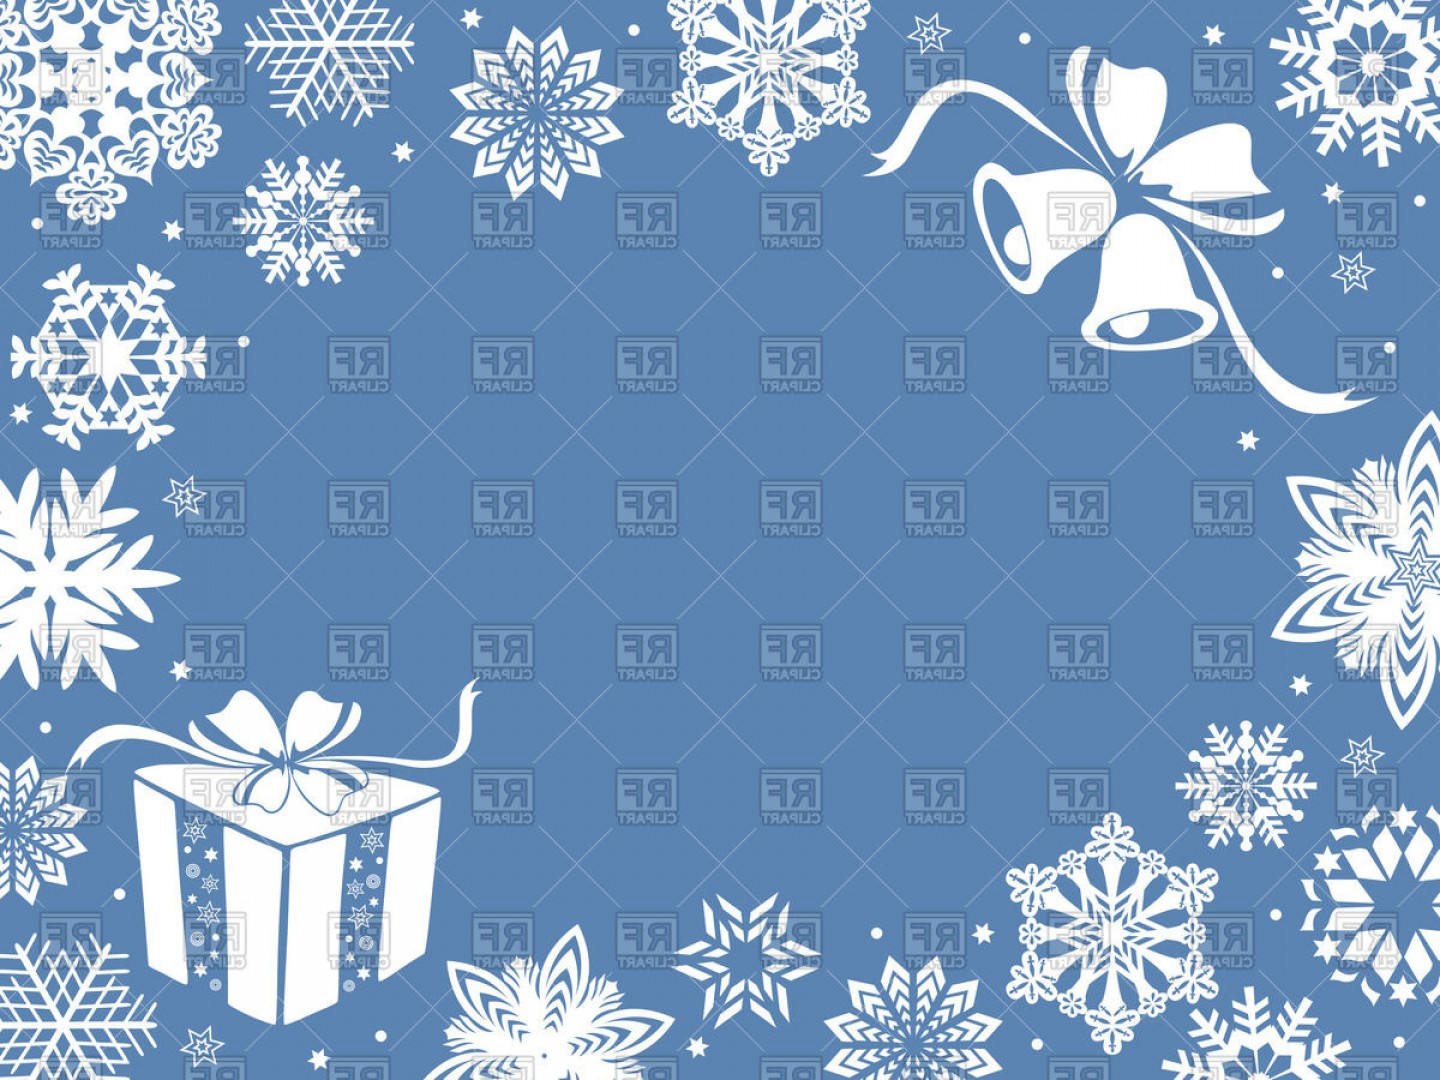 Snowflake Border Vector Art: Christmas Greeting Card Or Frame With Snowflakes And Gifts In Blue Shades Vector Clipart